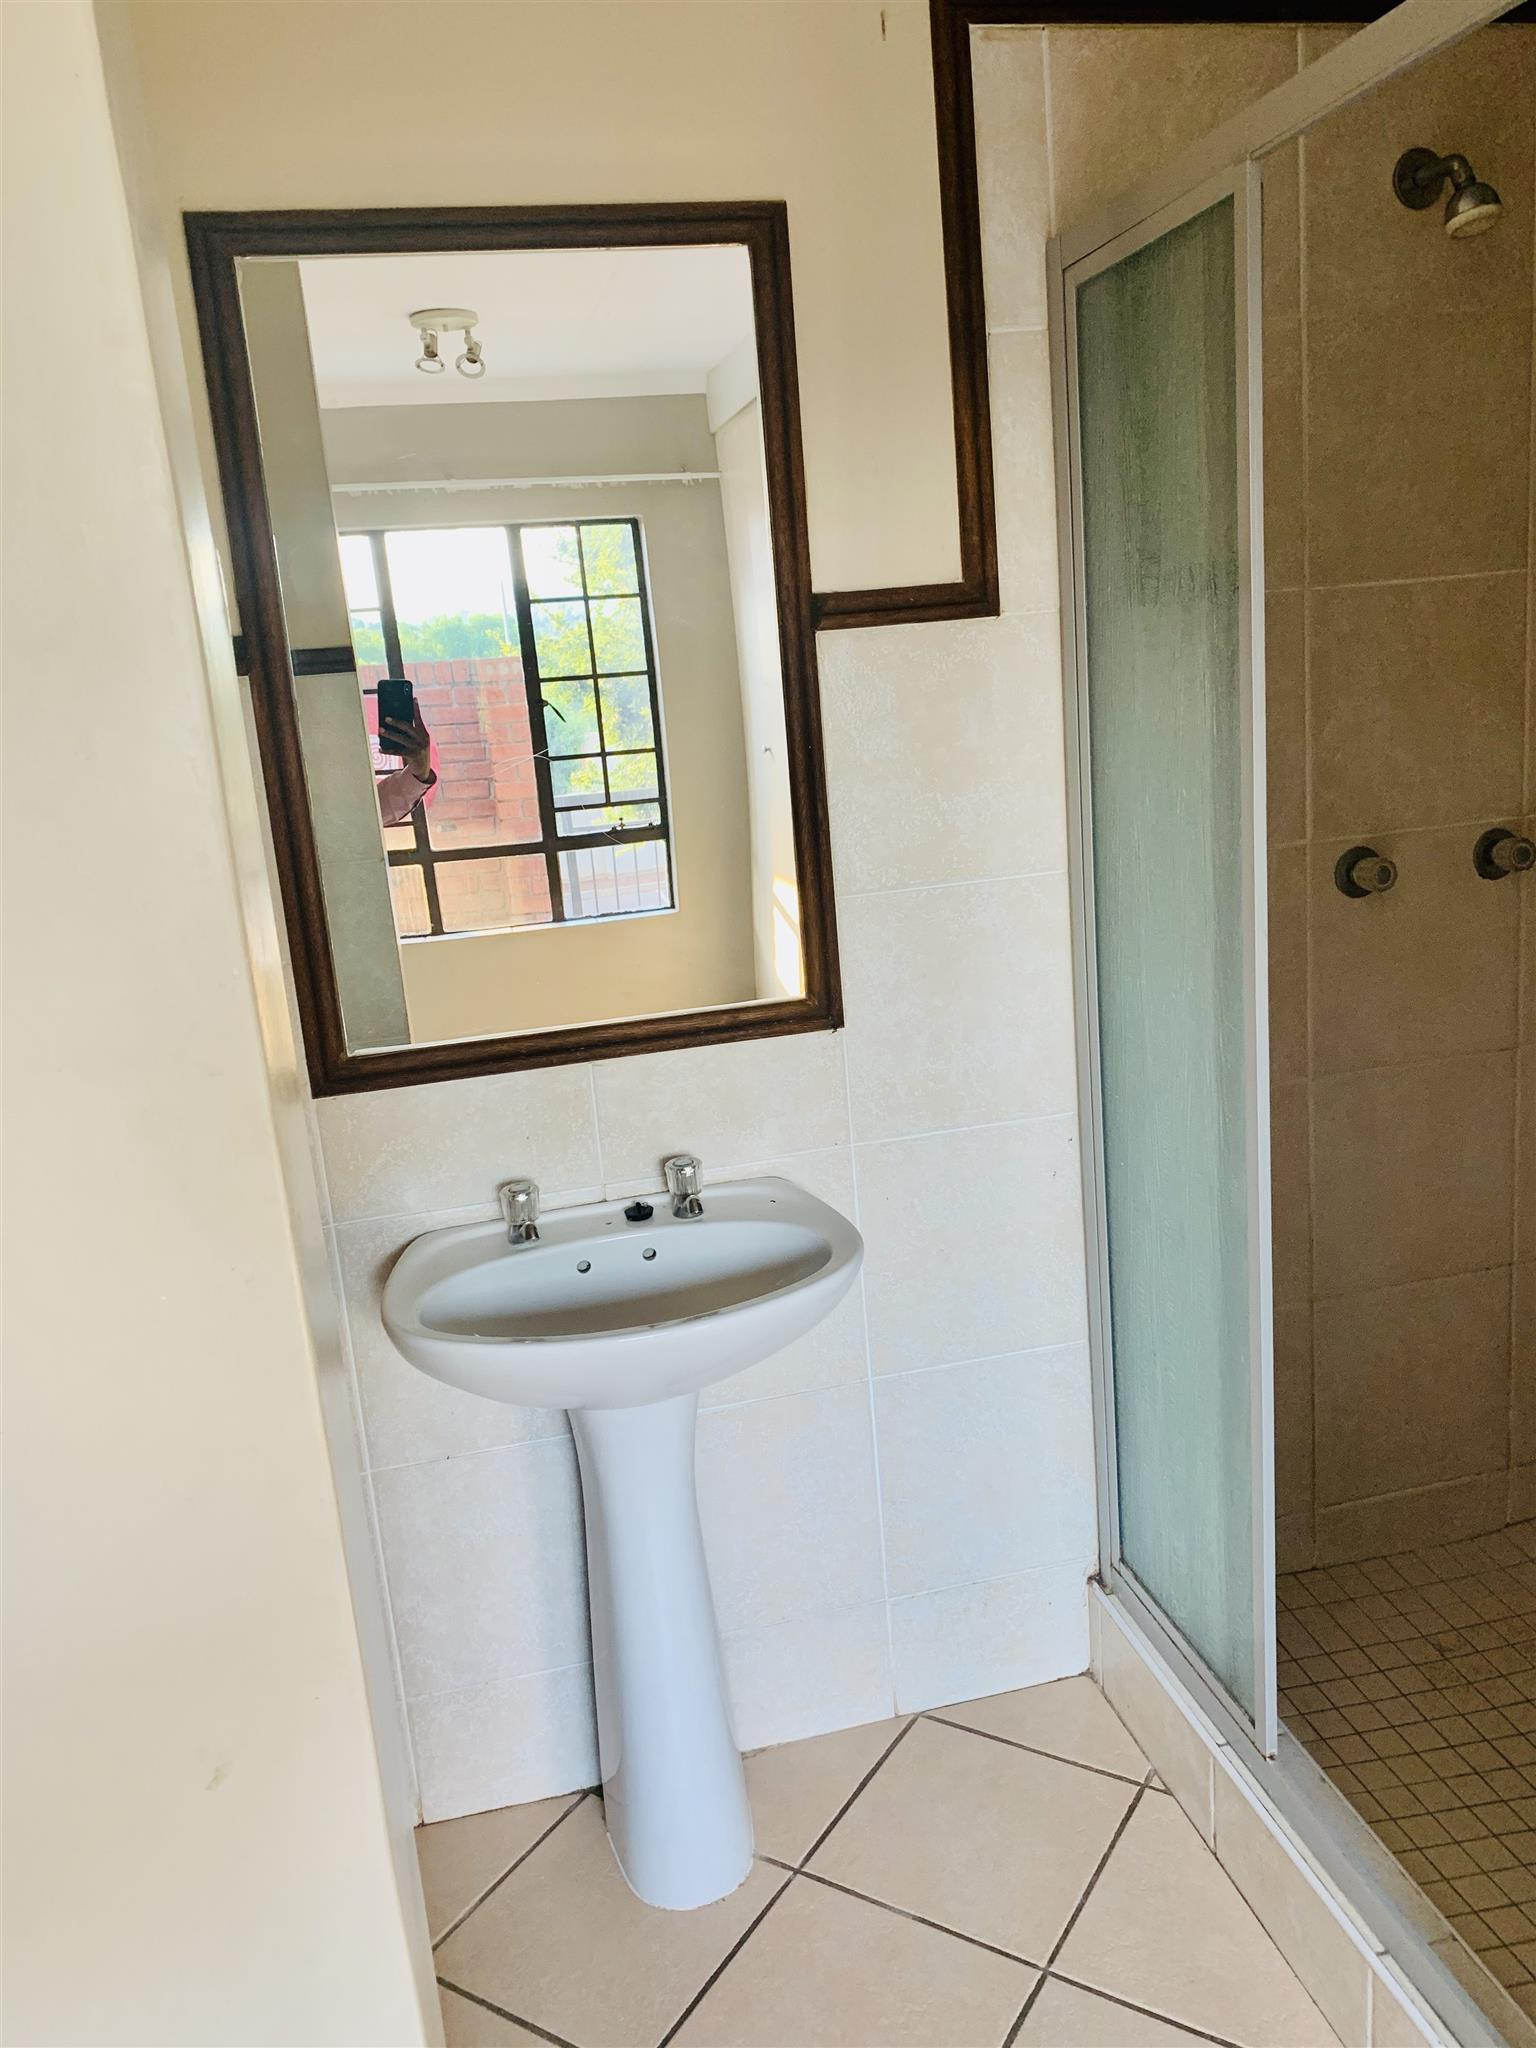 1 BEDROOM TO RENT IN PRETORIA NORTH IN A SECURE COMPLEX